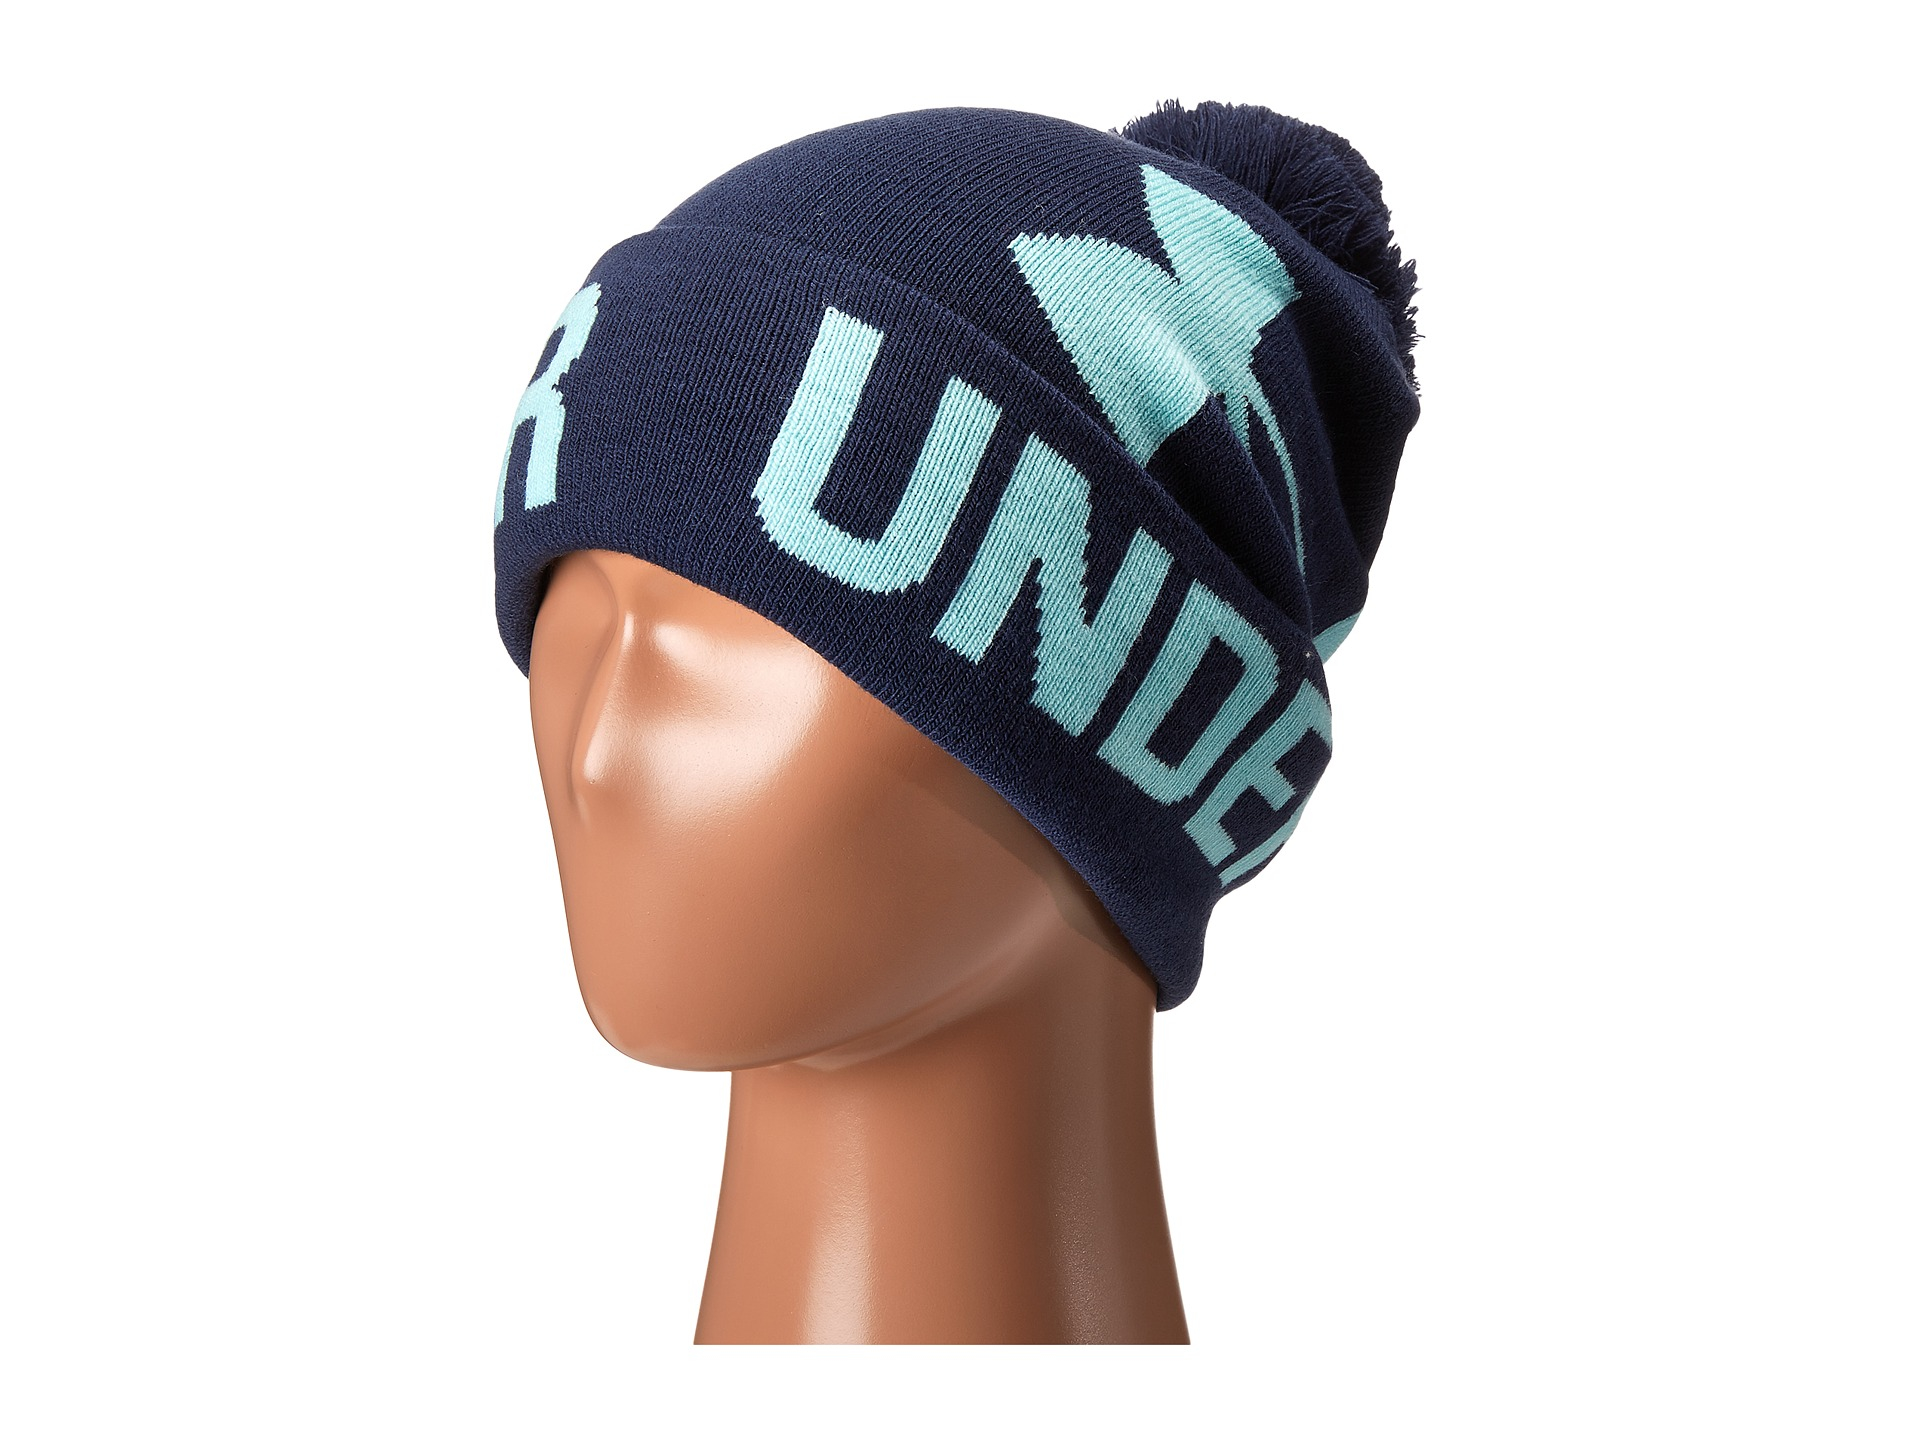 ... buying now 33fb2 b684a Lyst - Under Armour Ua Graphic Pom Pom Beanie in  Blue ... e9d1754e887d